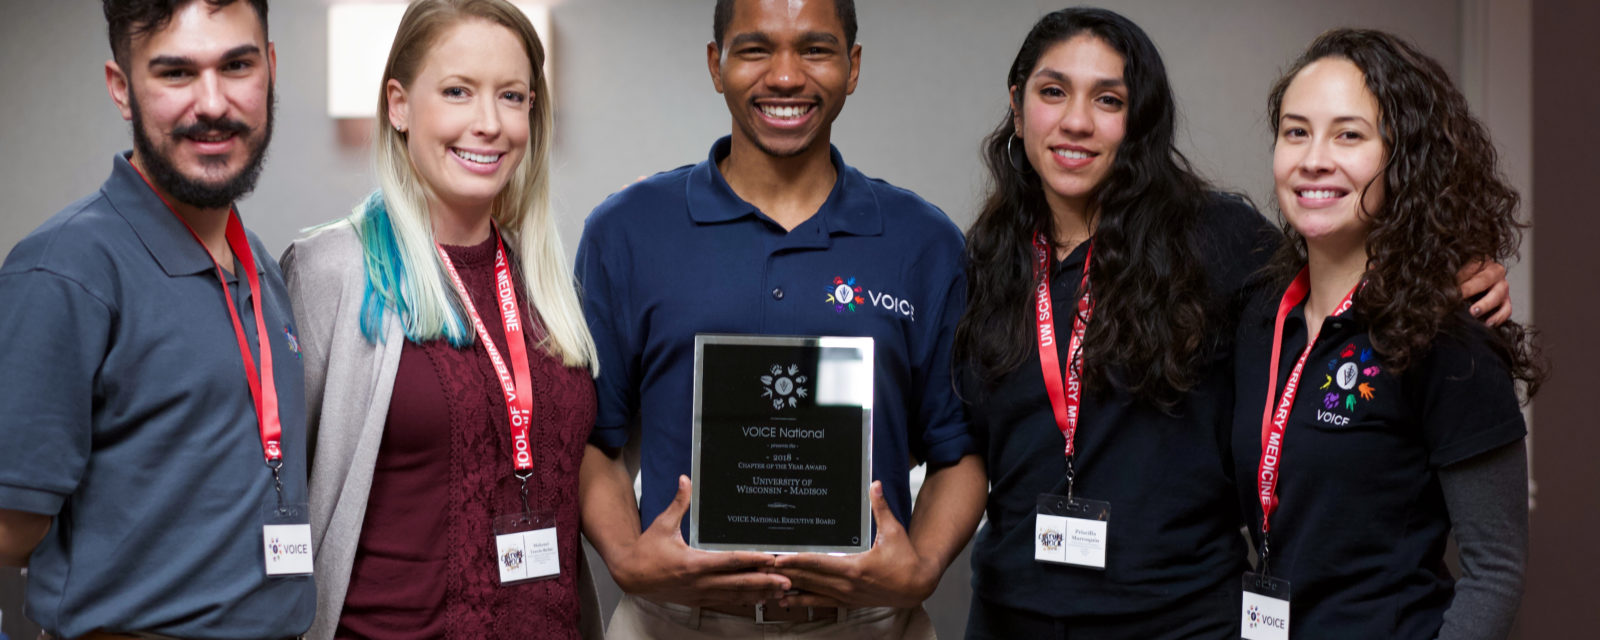 Officers of the UW SVM chapter of Veterinarians as One Inclusive Community for Empowerment (VOICE) accept the 2018-19 VOICE National Chapter of the Year Award. From left to right: Kameron Montana DVMx'20, Makenzi Travis-Balac DVMx'20, Kyle Granger DVMx'20, Priscilla Marroquin DVMx'21 and Jessica Carag DVMx'20. Not pictured: Melissa Sheth DVMx'21 and Clara Cole DVMx'21